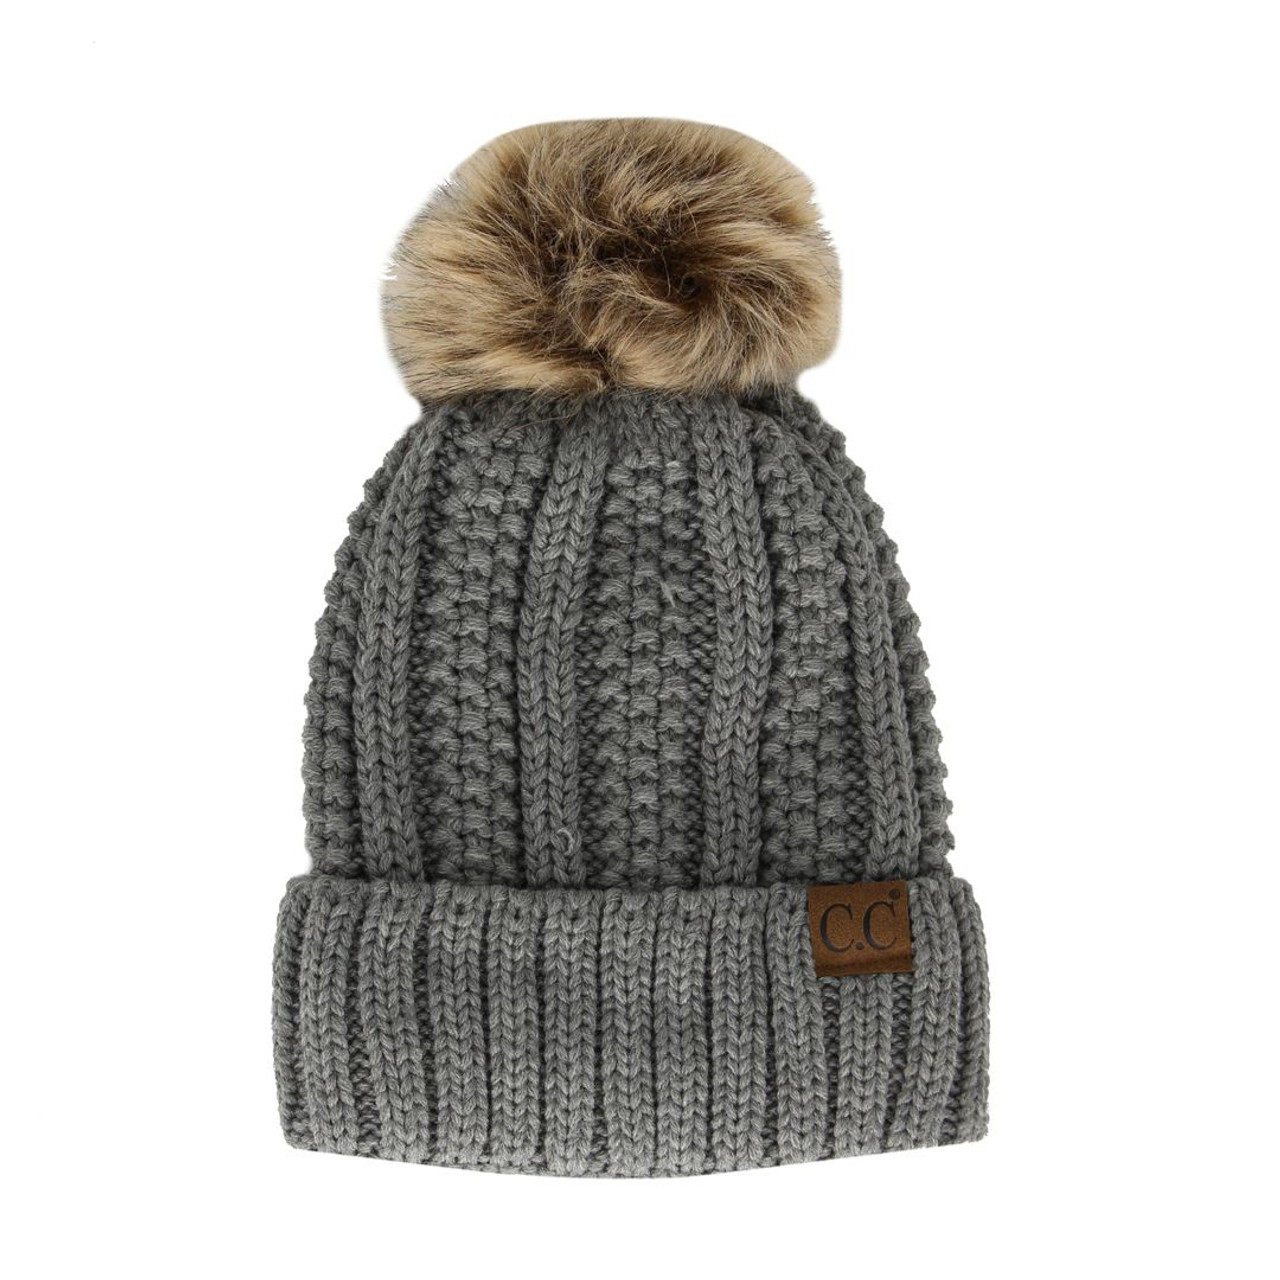 55fef73ea100e7 C.C Cable Knit Pom Pom Beanie - Grey - Trendy Threads Inc